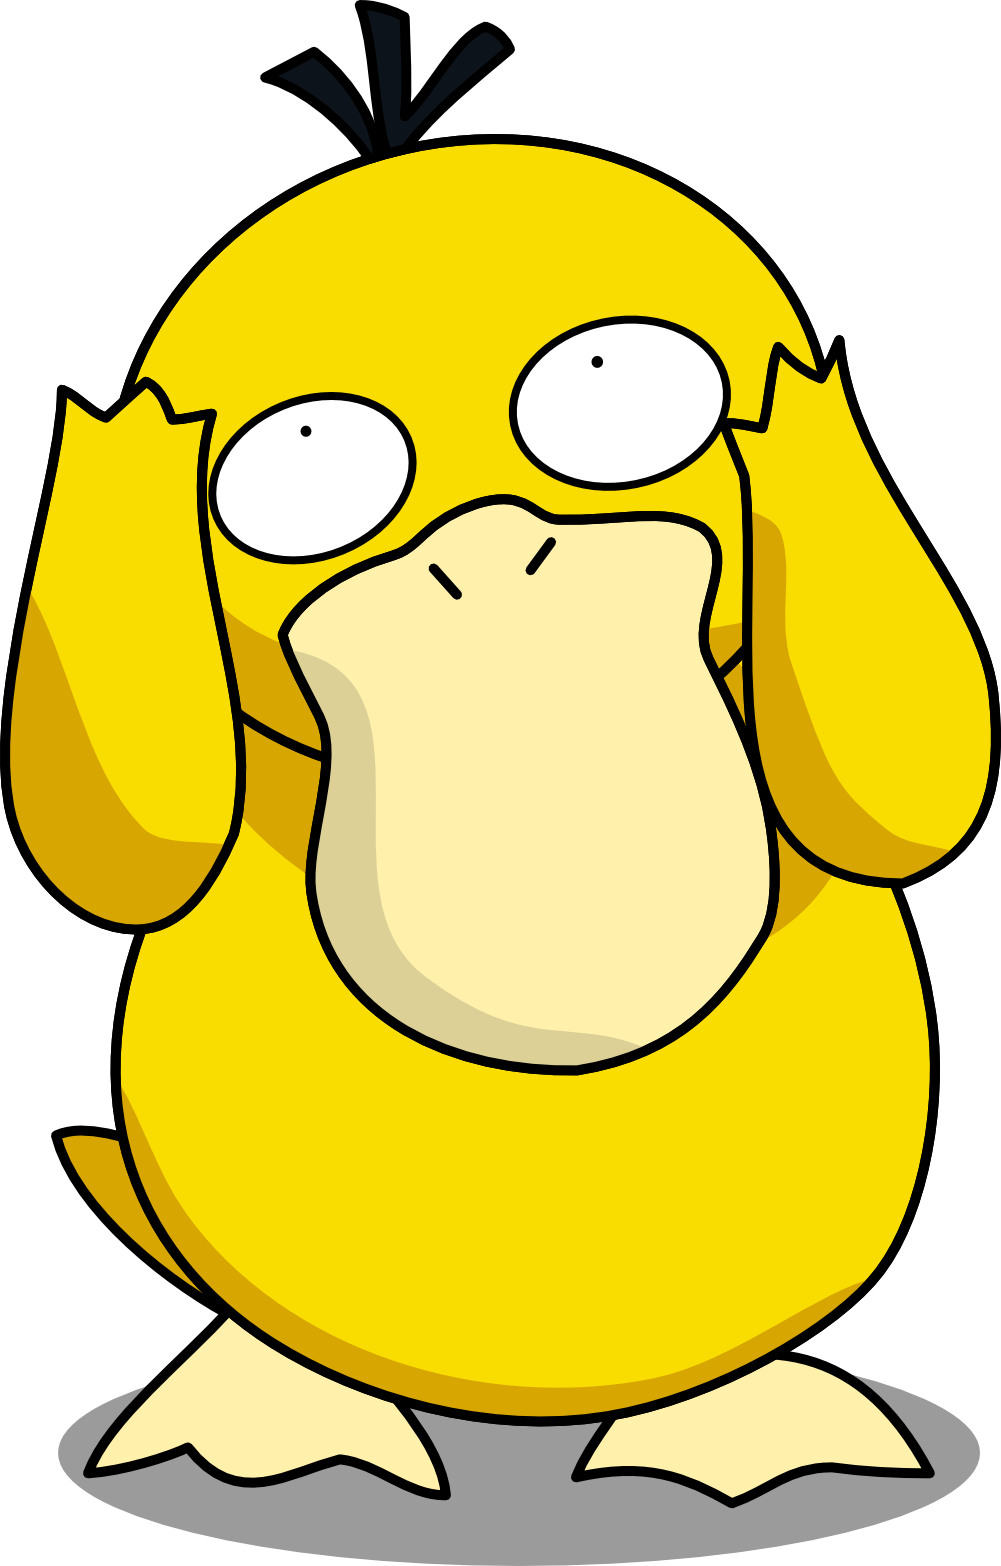 Silly Psyduck by Mighty355 on DeviantArt